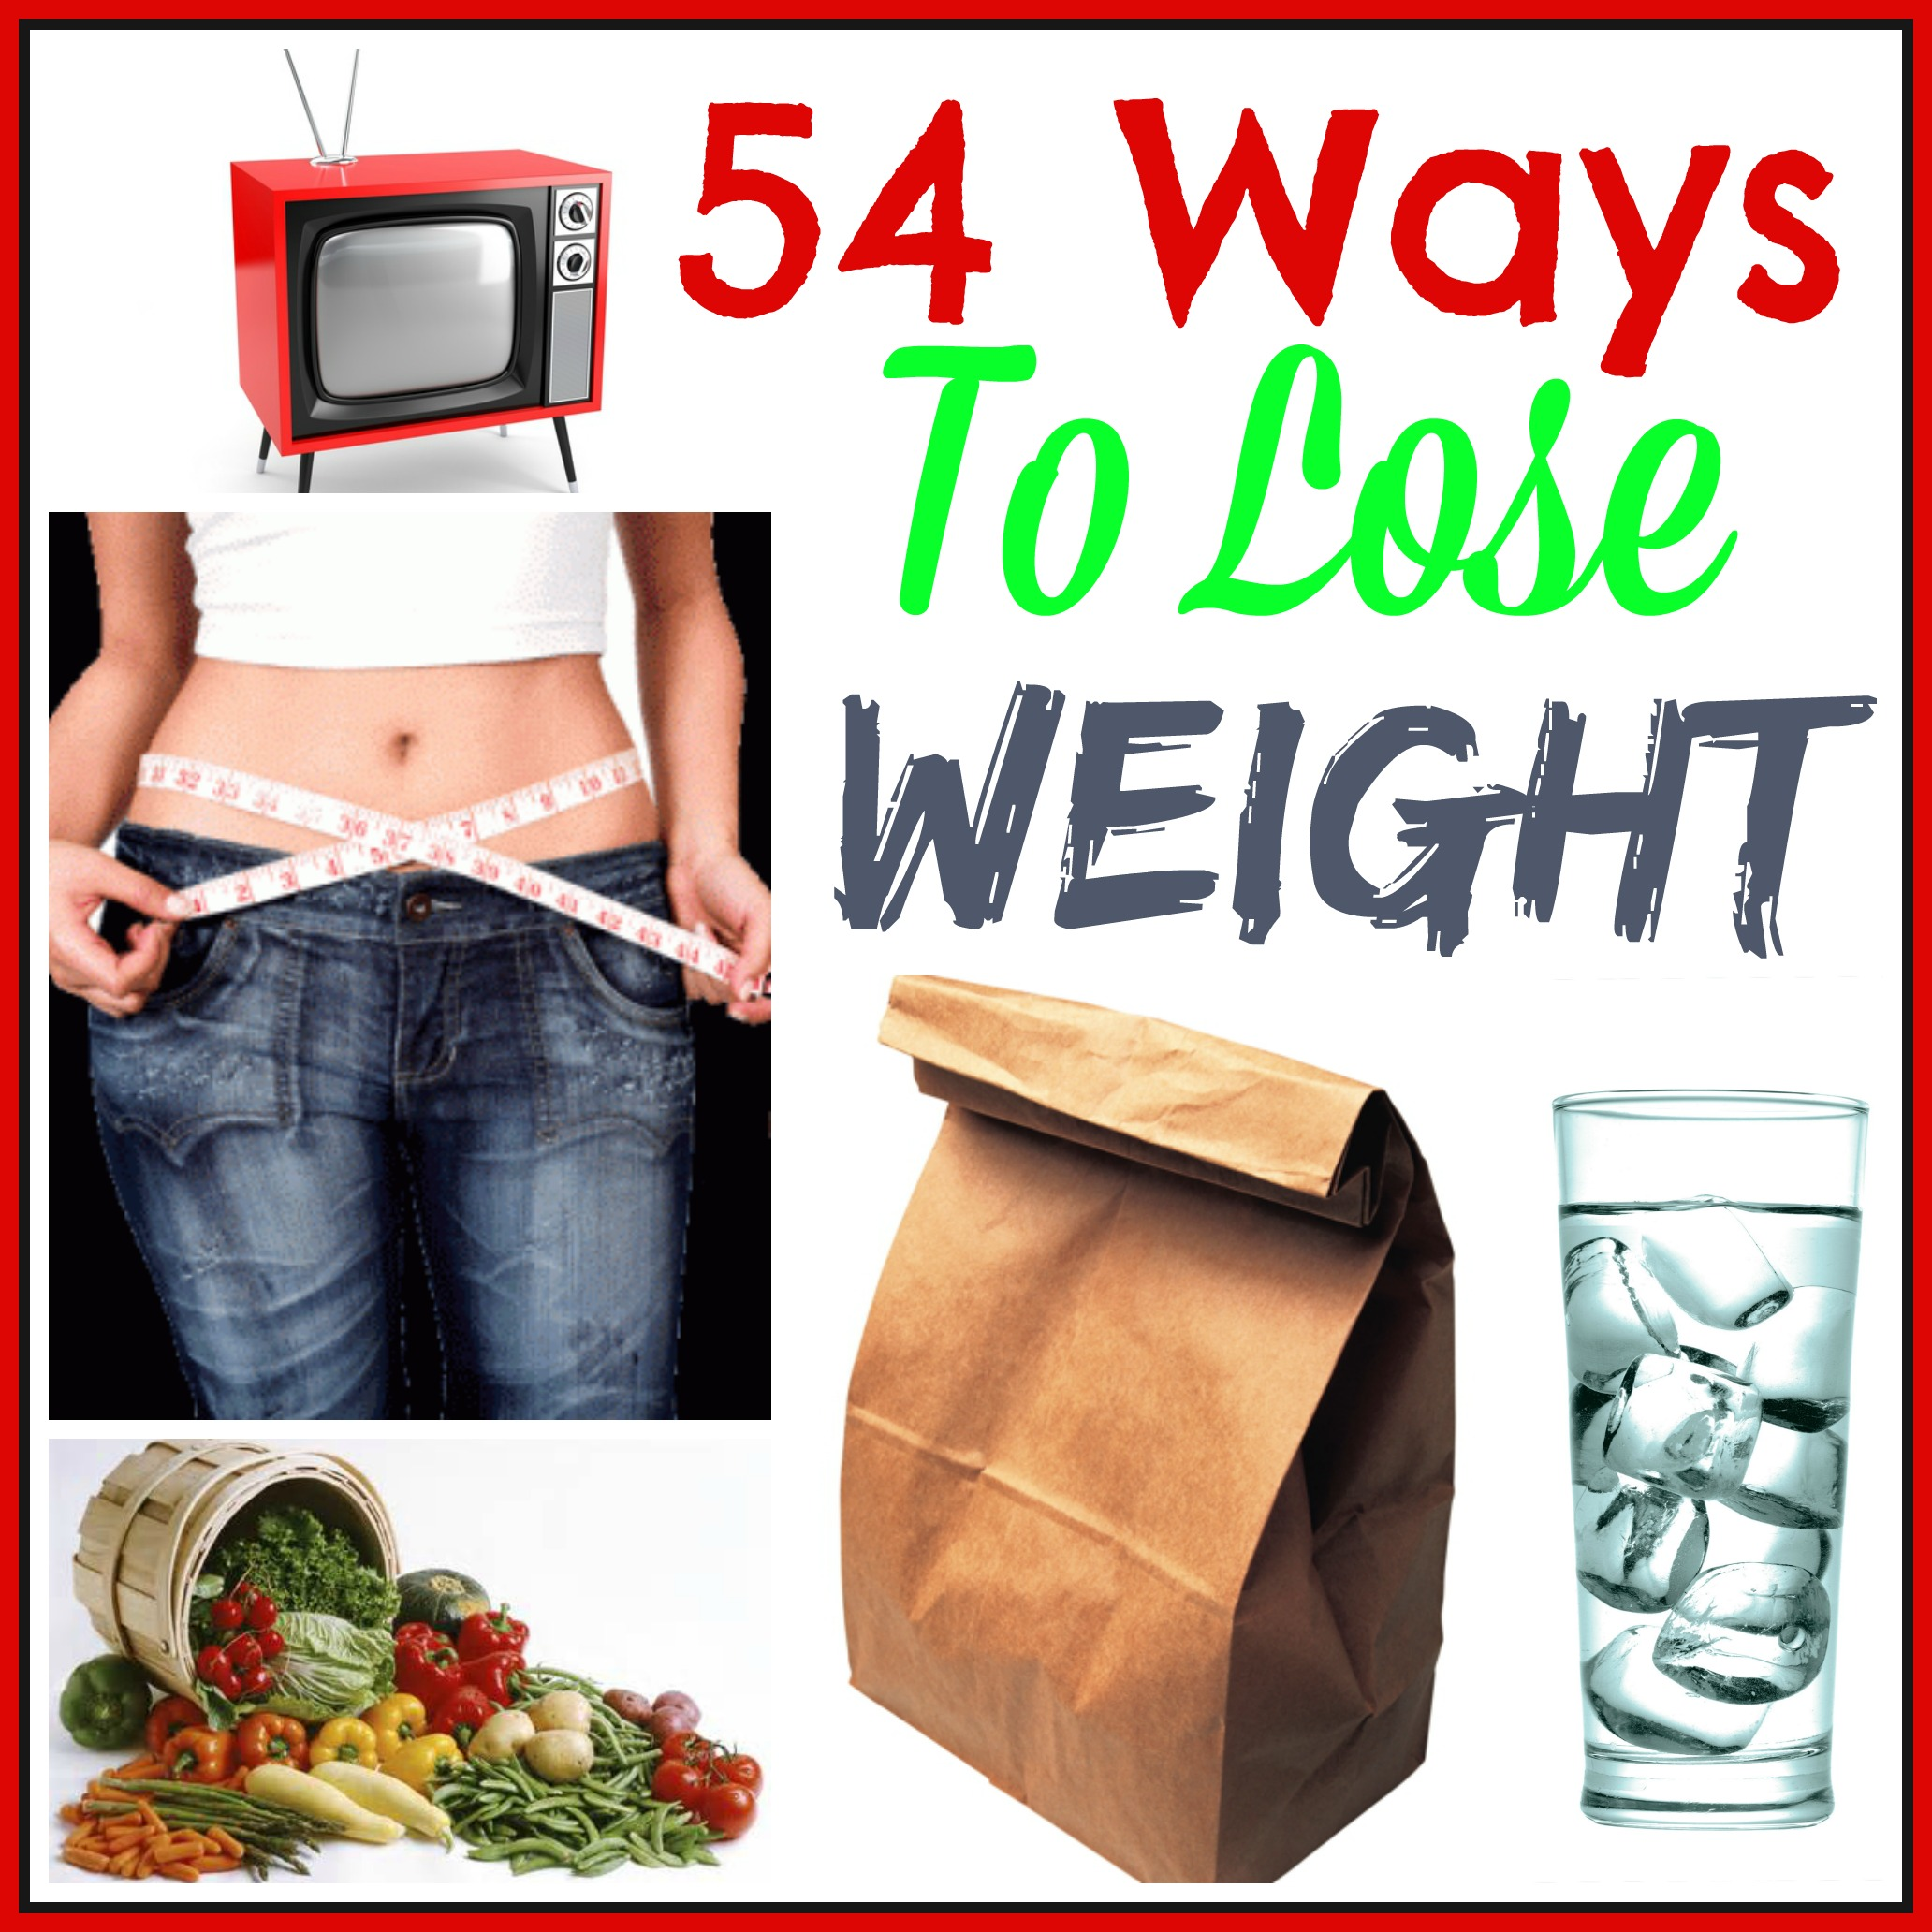 10 ways to lose weight quickly quotes